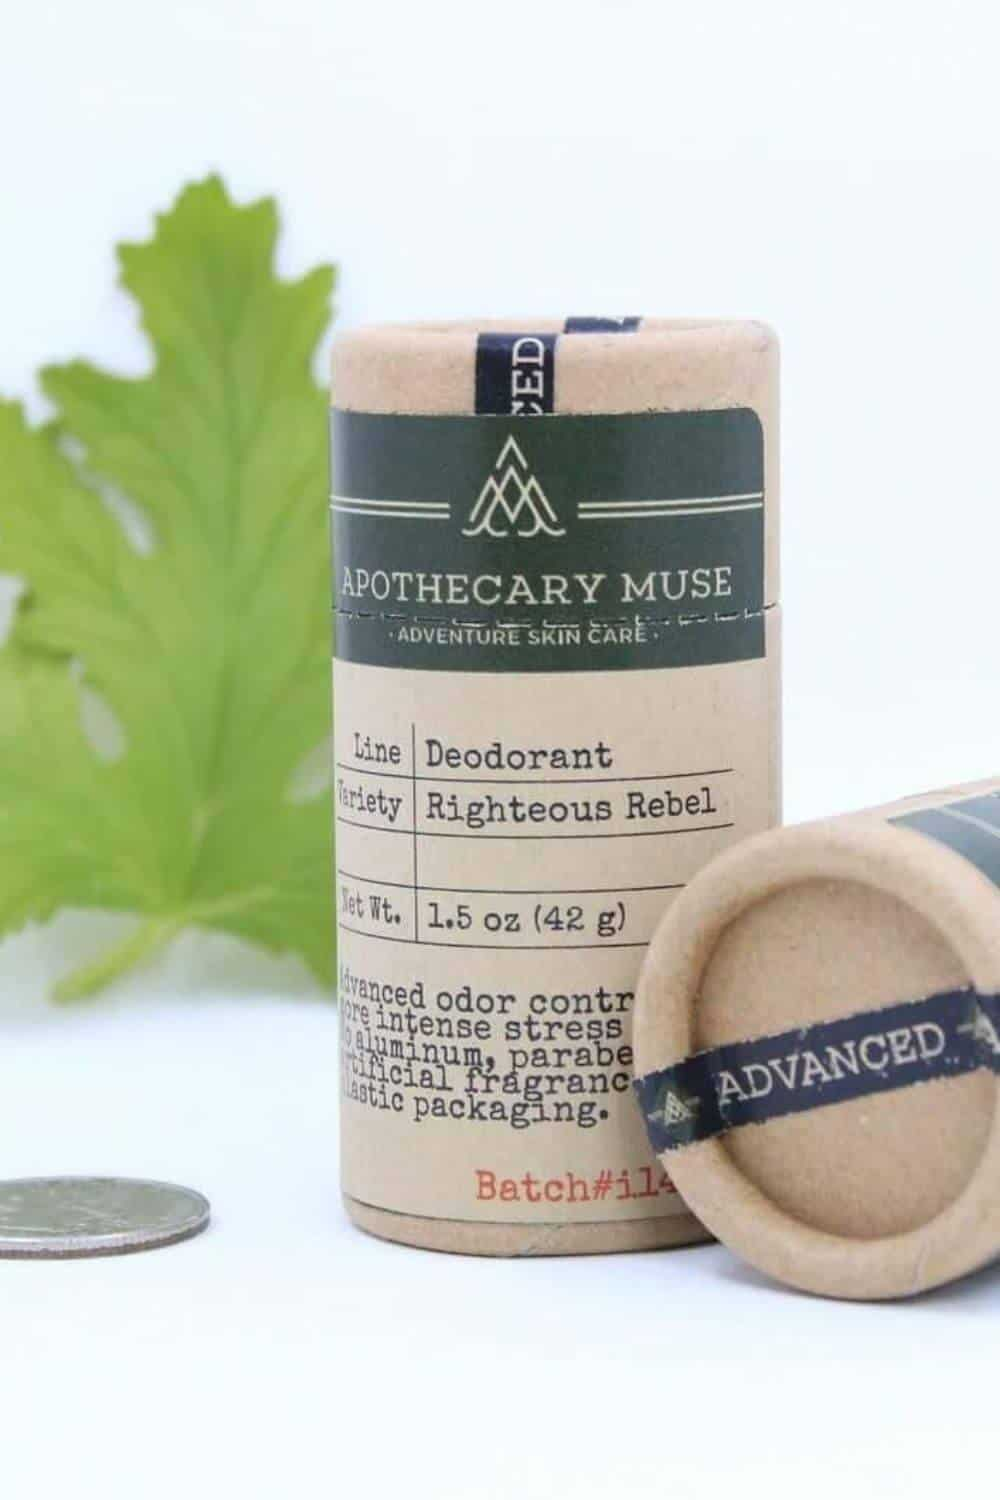 We're meant to sweat. So finding the best natural and environmentally friendly deodorant, one that really works and is actually natural is pretty important! Here's our list... Image by Apothecary Muse #environmentallfriendlydeodorant #sustainablejungle